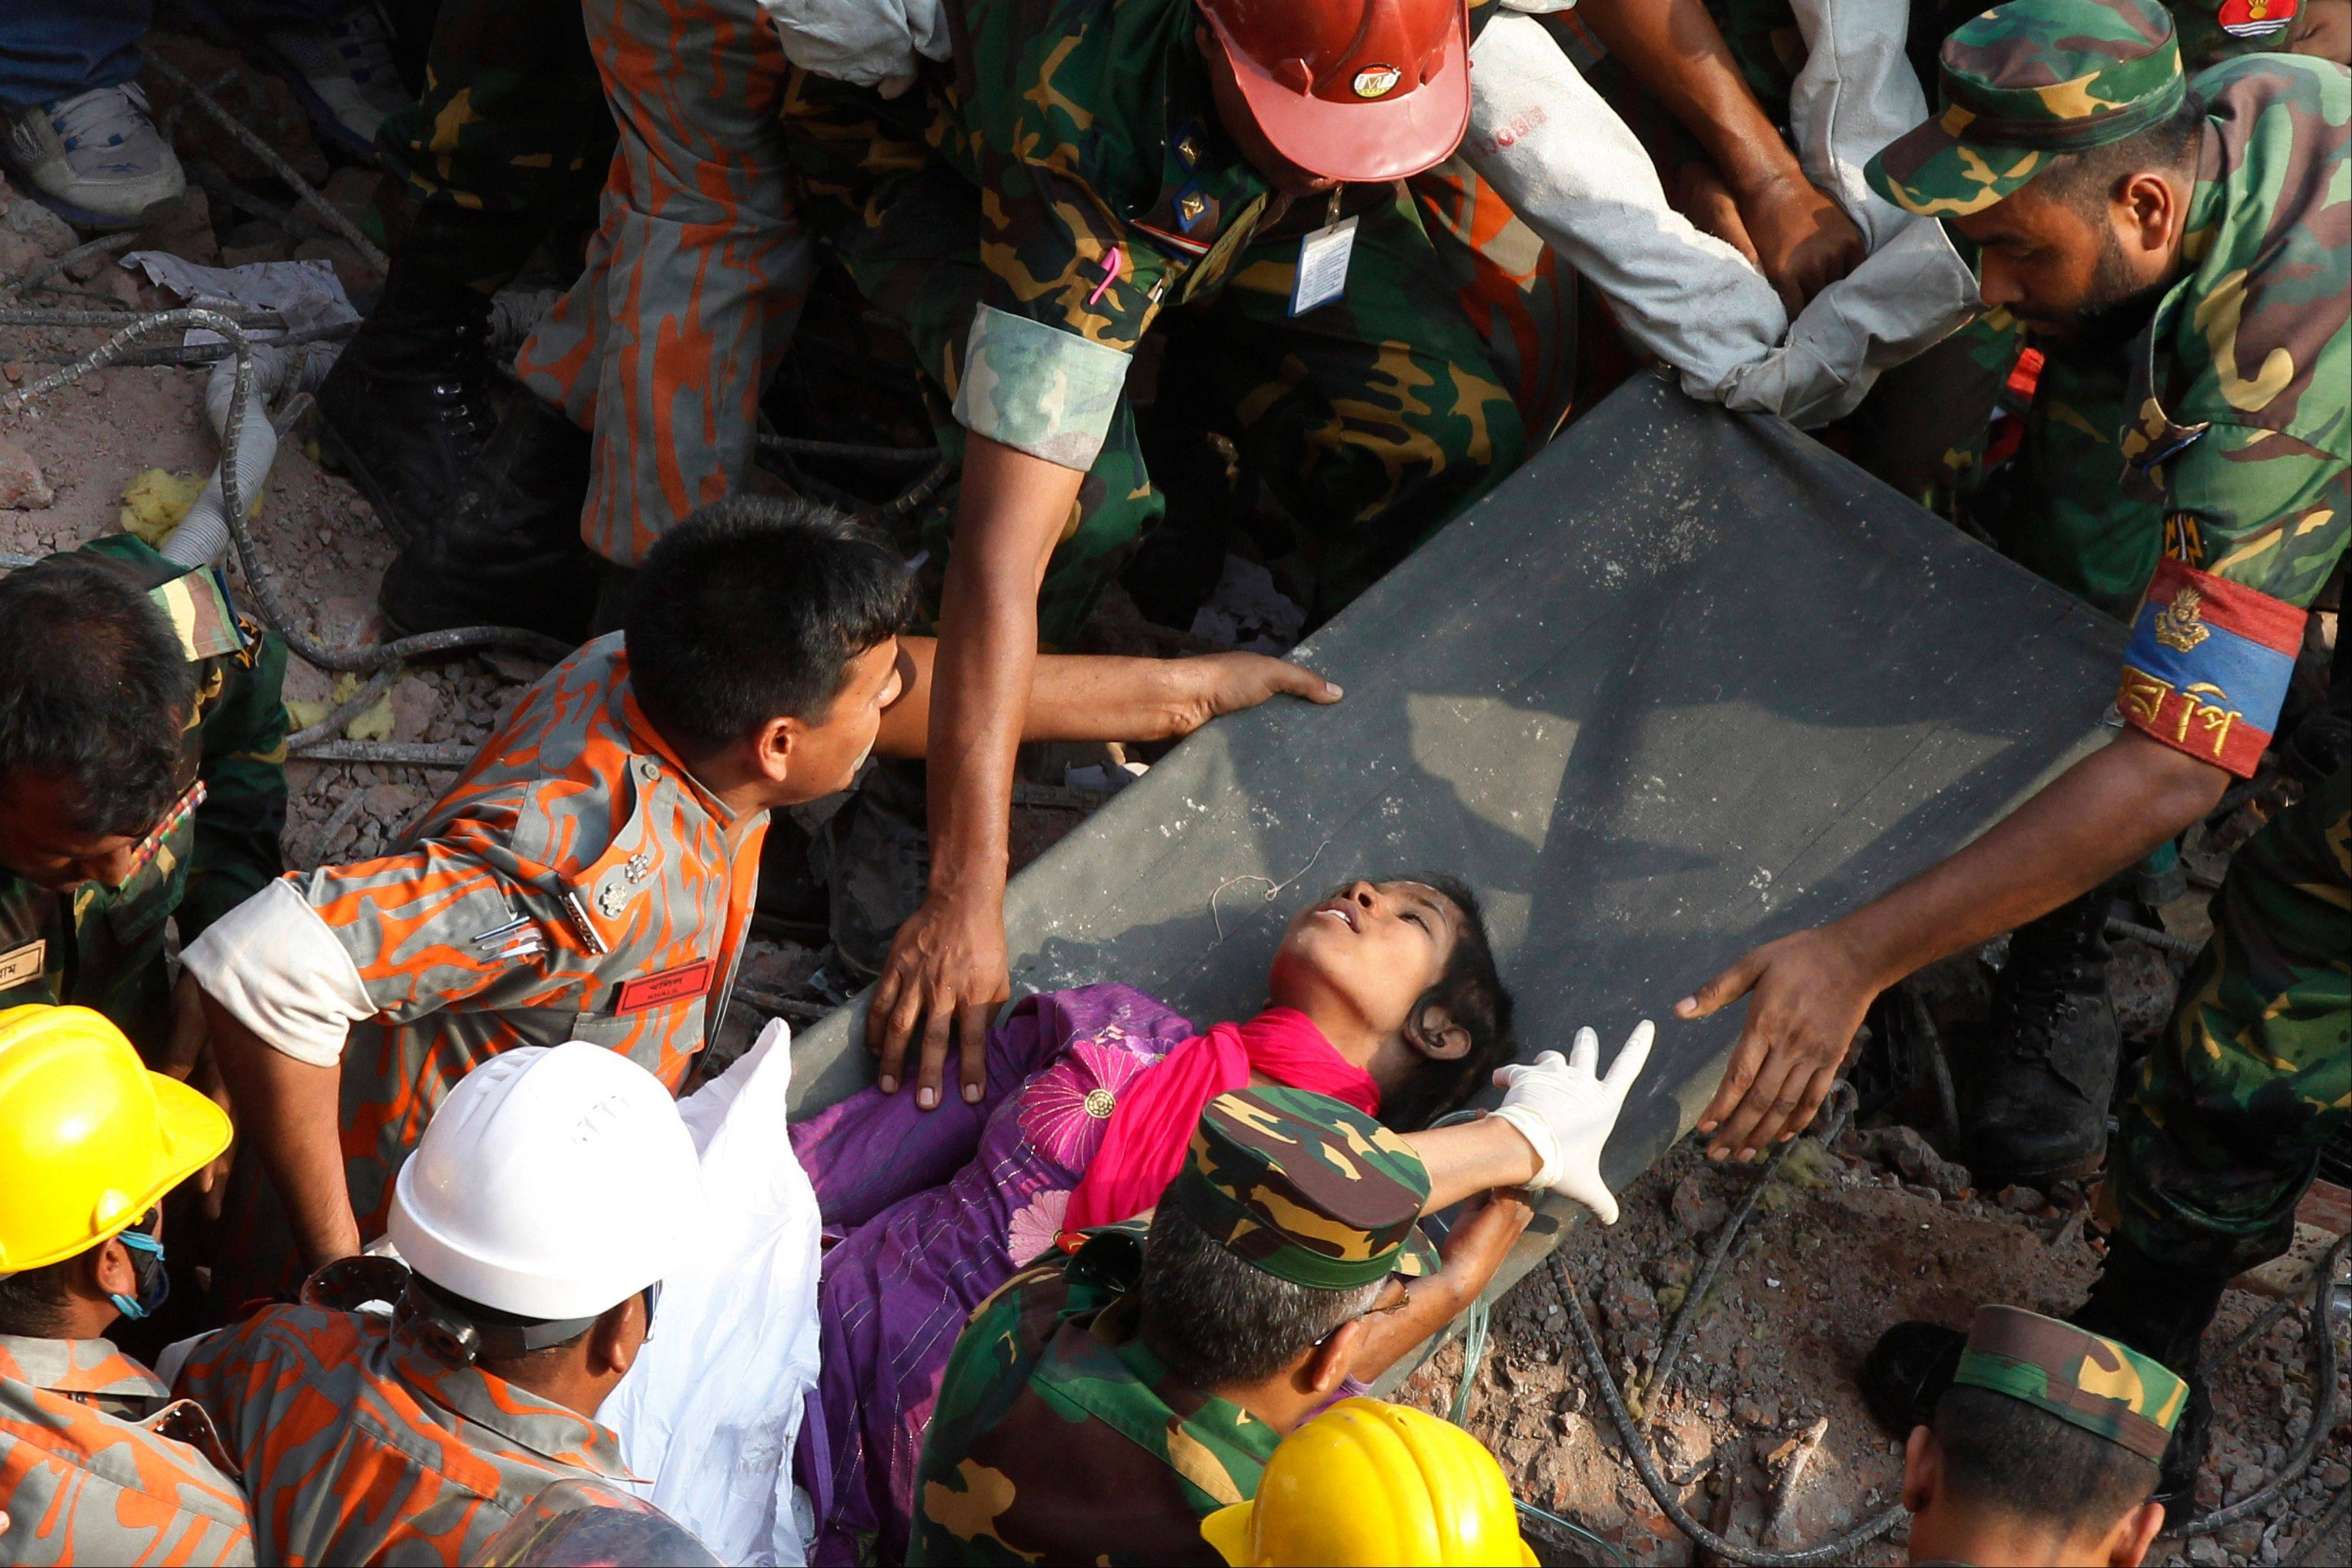 Survivor Reshma Begum lies on a stretcher after being pulled out from the rubble of a building that collapsed in Savar, near Dhaka, Bangladesh, Friday, May 10, 2013. Begum was working in a factory on the second floor of Rana Plaza when the building began collapsing around her April 24. She raced down a stairwell into the basement, where she became trapped near a Muslim prayer room in a wide pocket that allowed her to survive, she told the private Somoy TV.